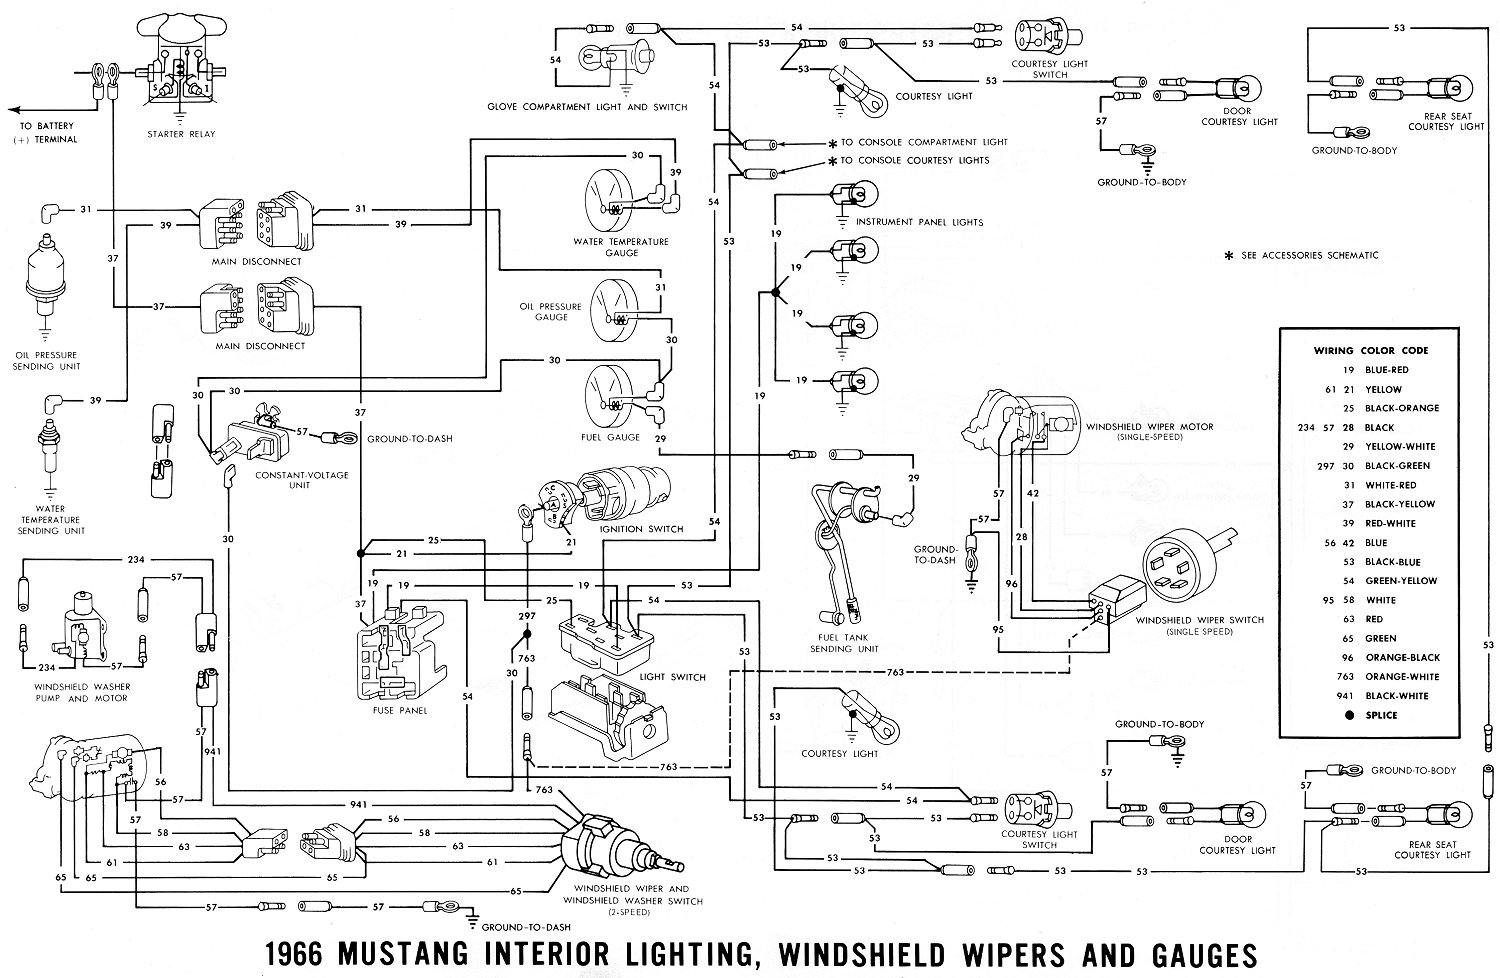 1966 Mustang Light Wiring Opinions About Wiring Diagram \u2022 69 Mustang  Wiring Diagram Fog Light Wiring Diagram For 1966 Mustang